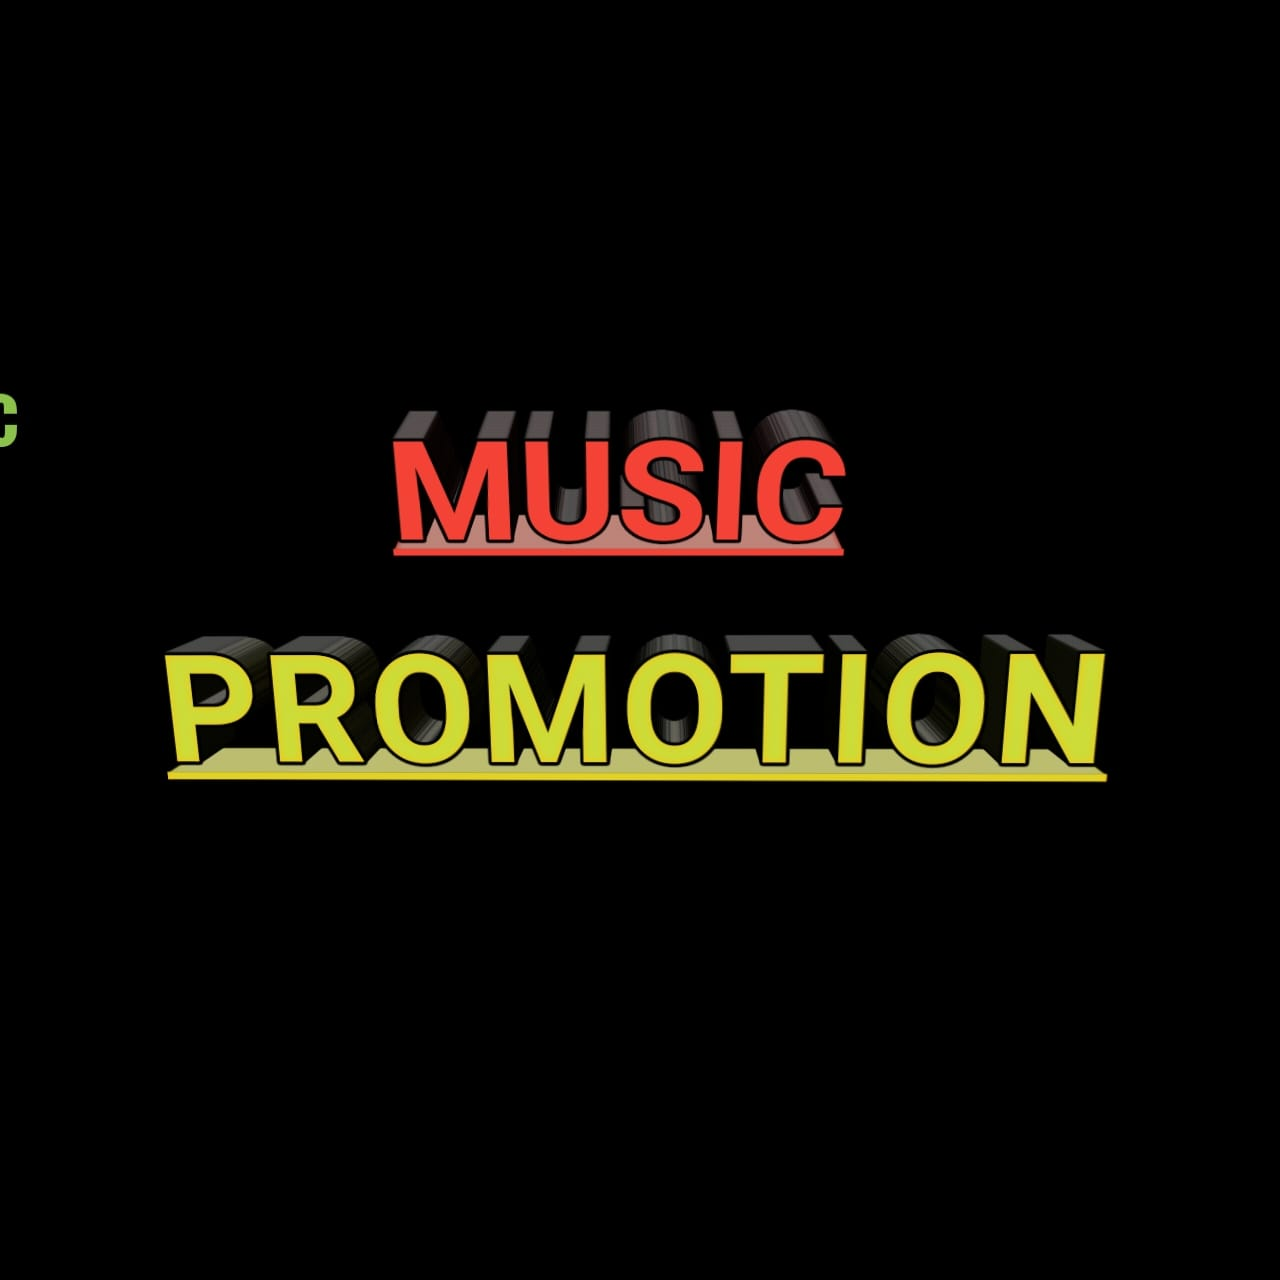 instant Best Music Promotion for Music Playlist OR Artist Profile Users